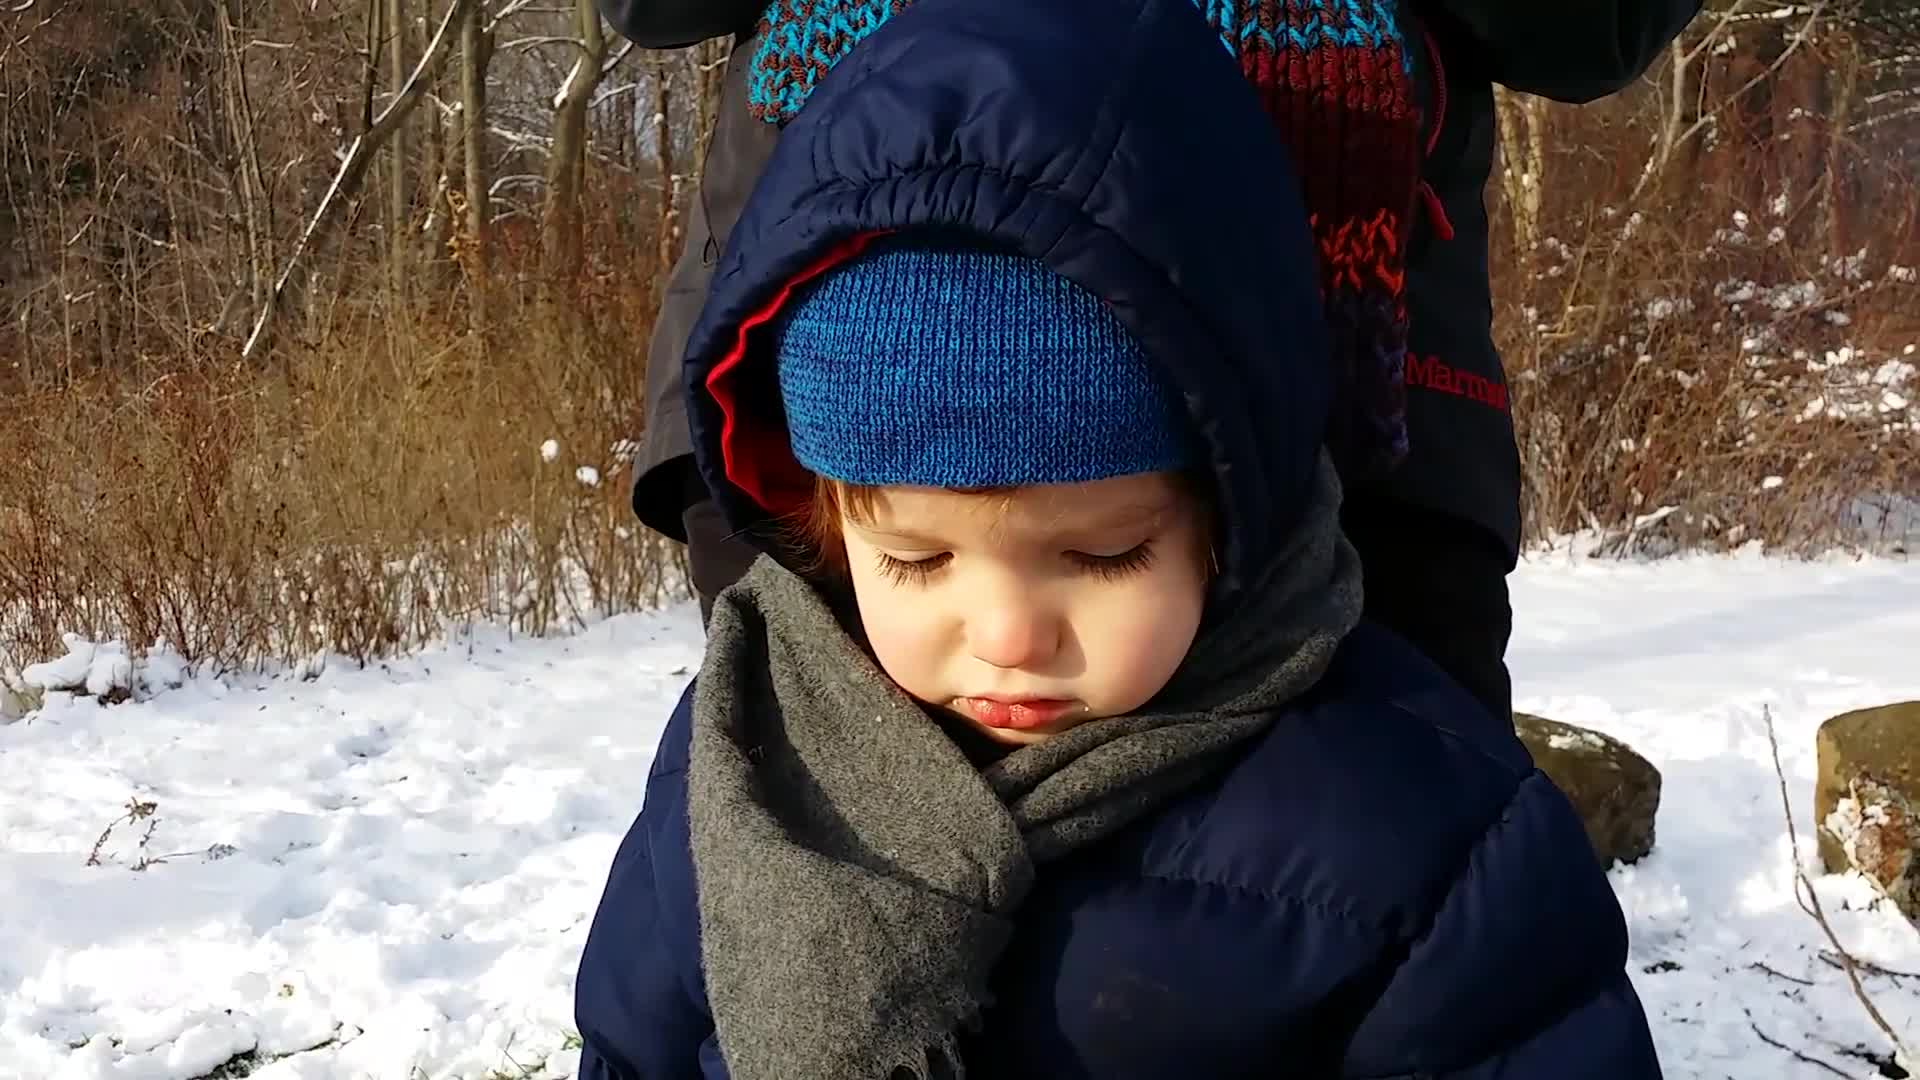 Baby Can't Make Up His Mind About Sledding